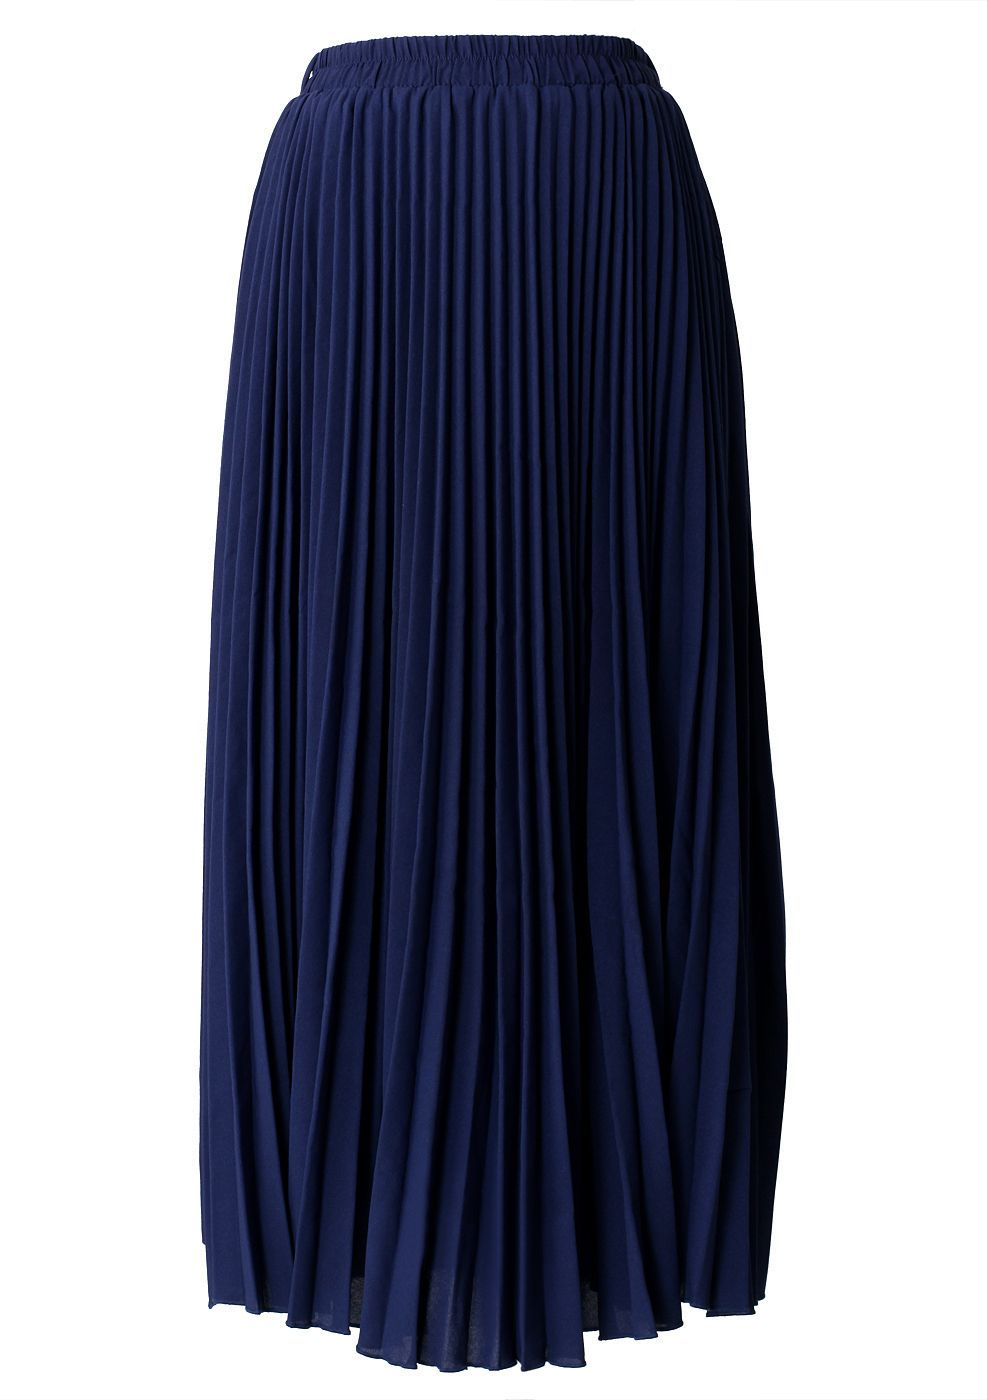 6680c999806b Navy Blue Pleated Maxi Skirt | WOMEN'S CLOTHING | Pleated maxi ...